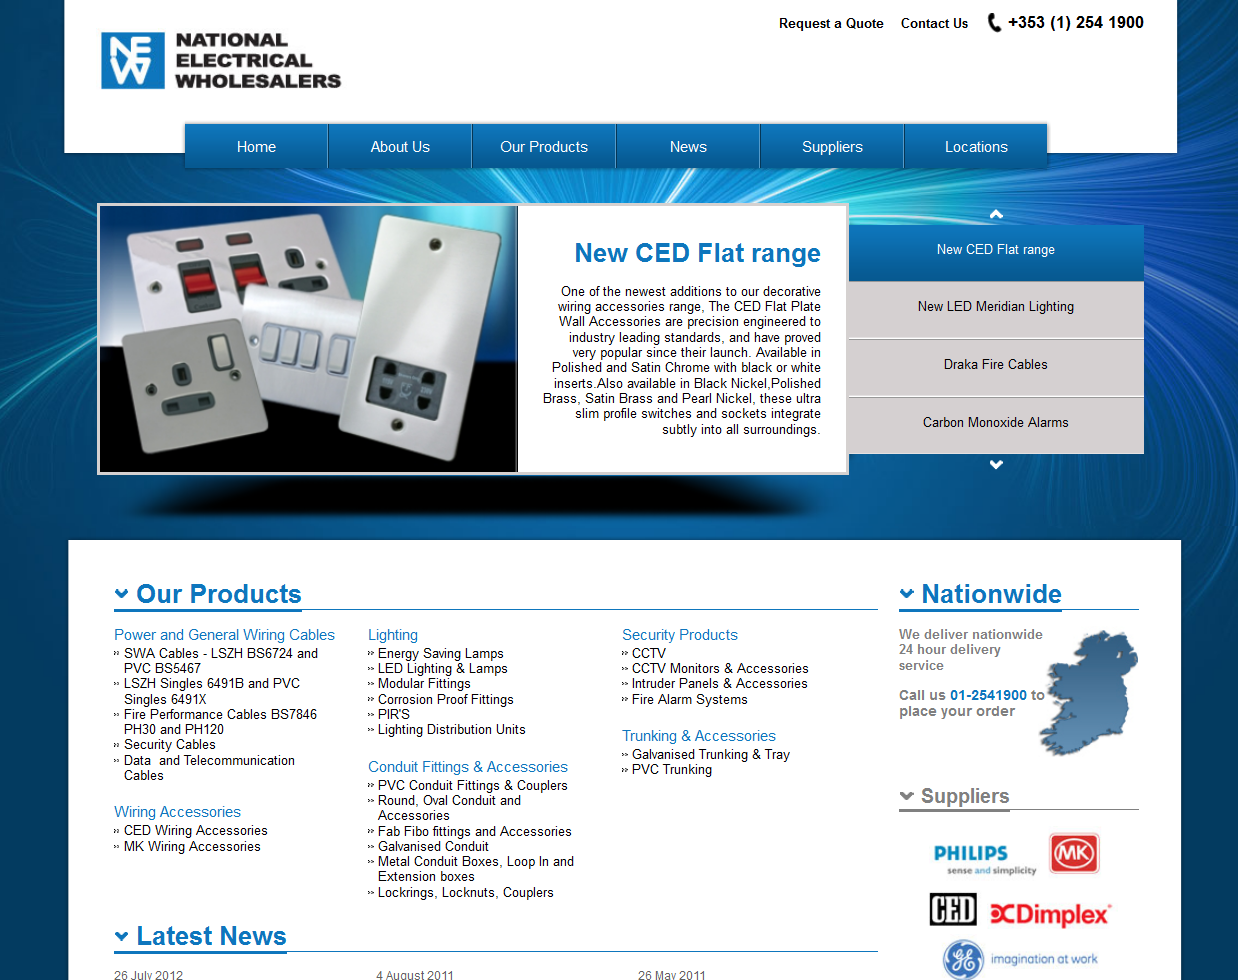 National Electrical